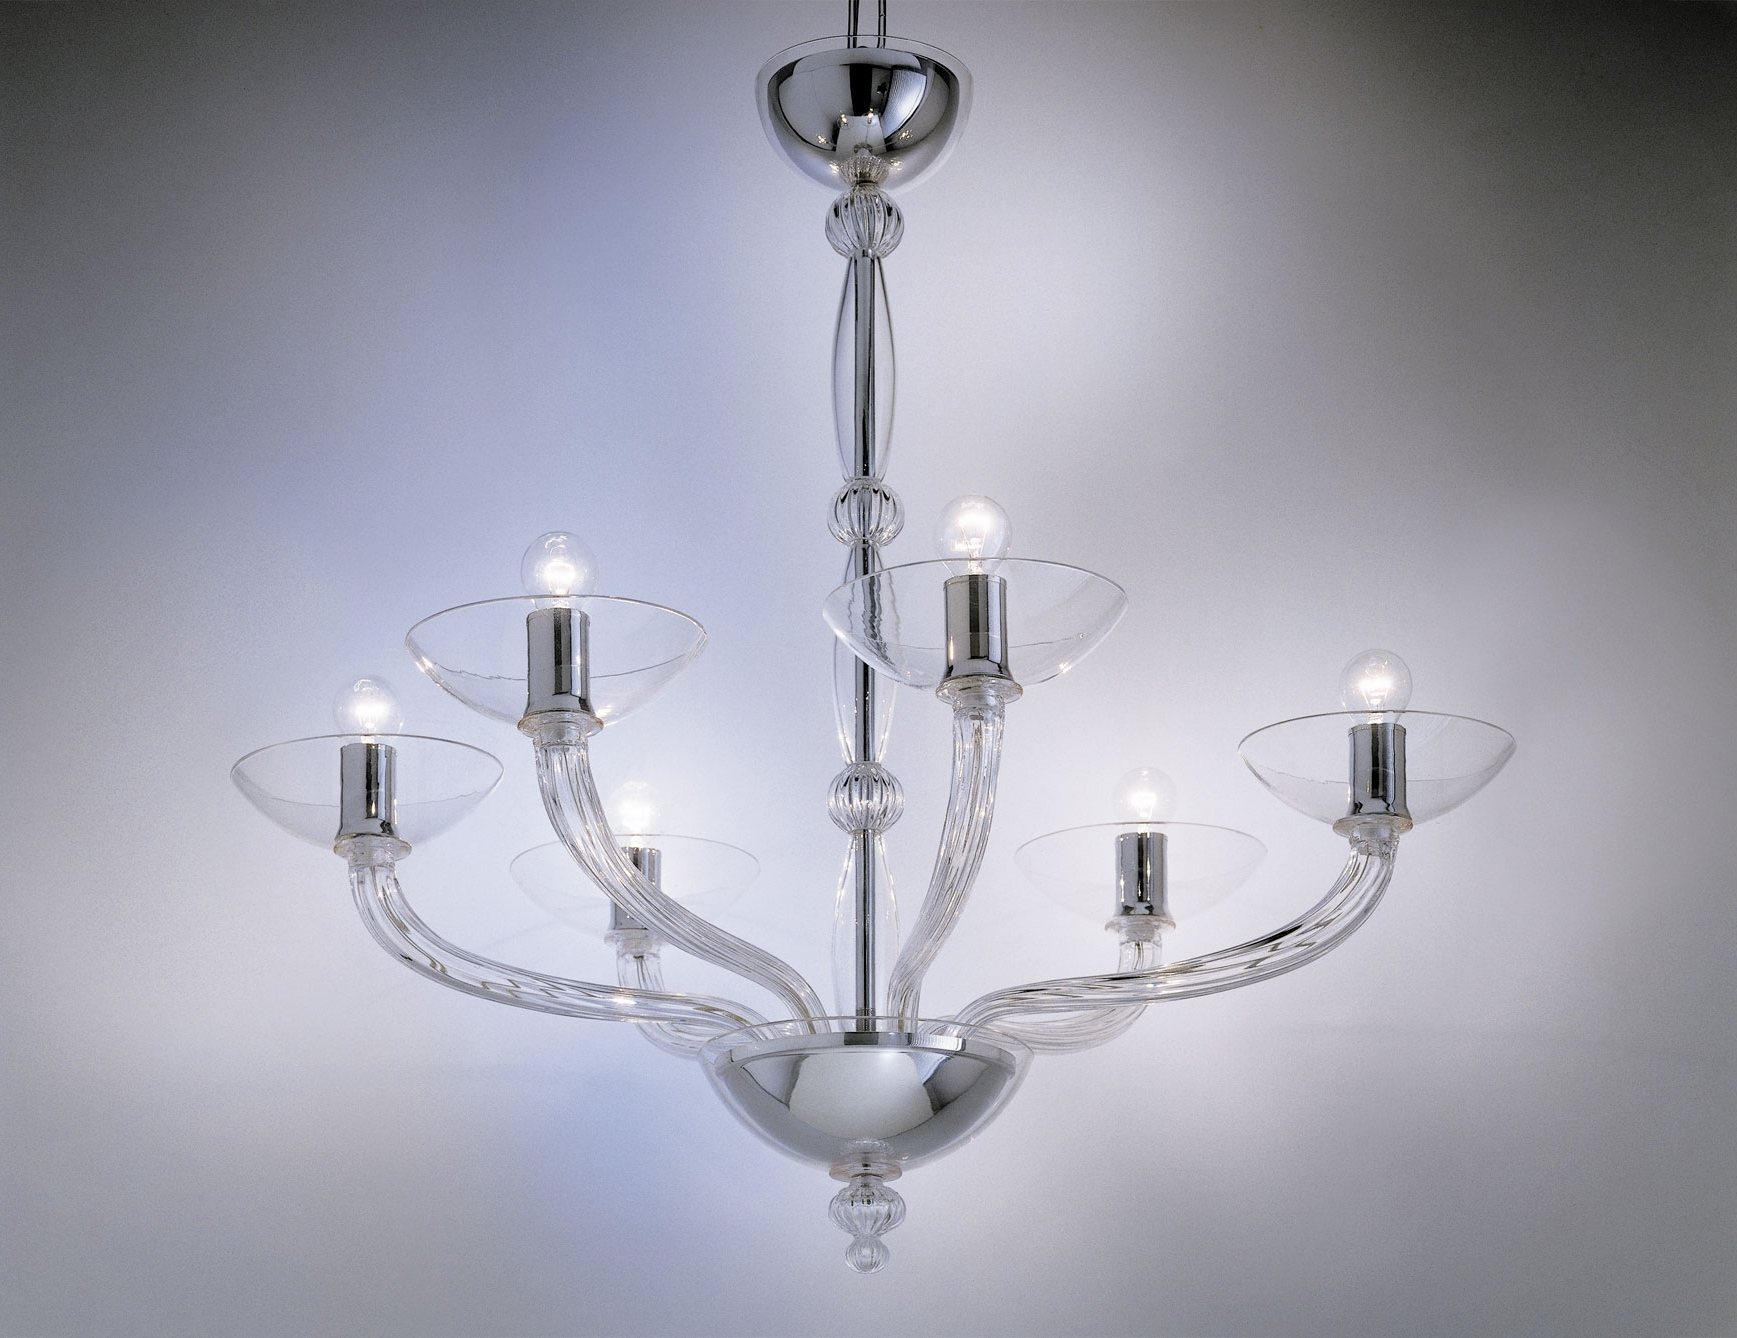 Widely Used Nella Vetrina Eclettici Ninfea 9002 06 Murano Chandelier In Clear Inside Clear Glass Chandeliers (View 20 of 20)